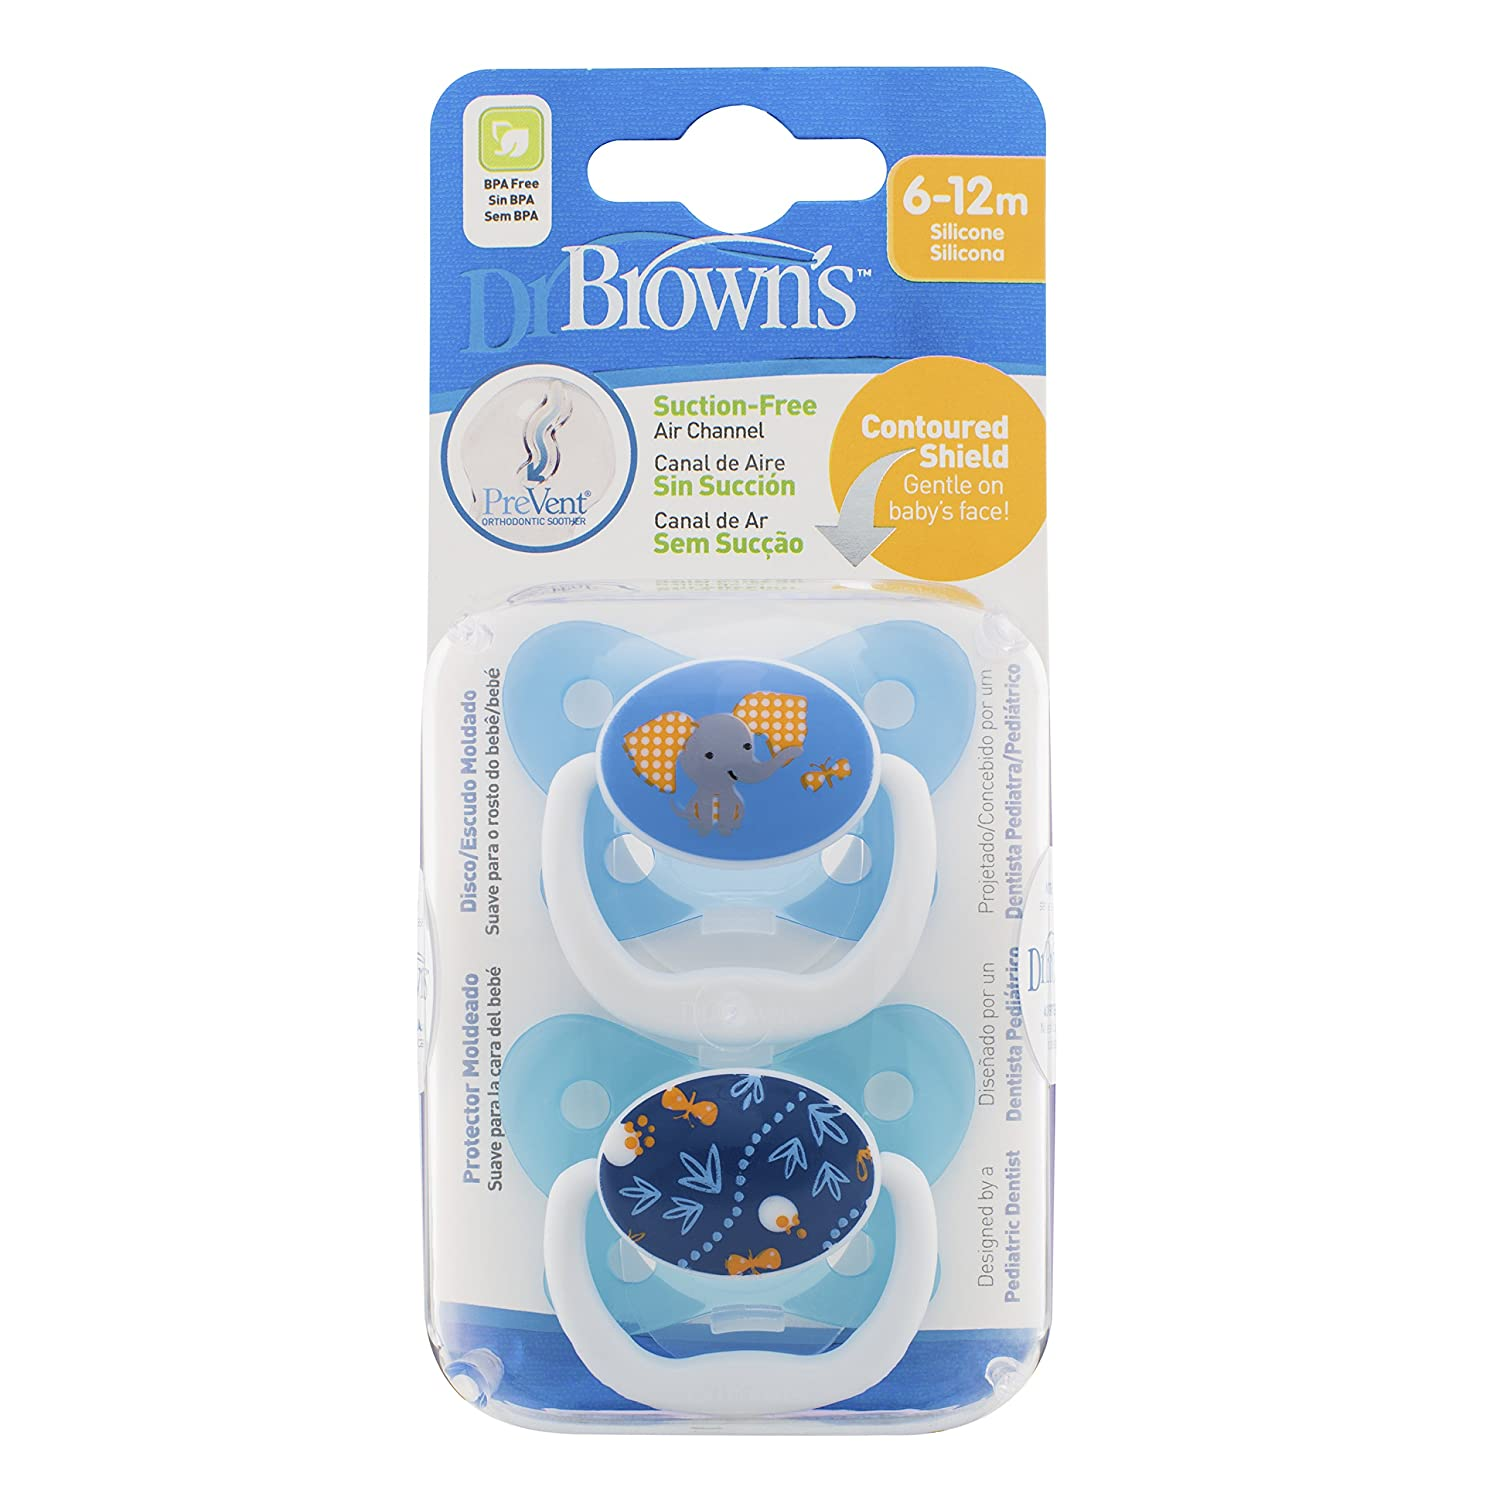 Dr Brown's Prevent Soother (6 to 12 Months, Blue, Pack of 2) Dr Brown's Natural Flow DRB-PV22402